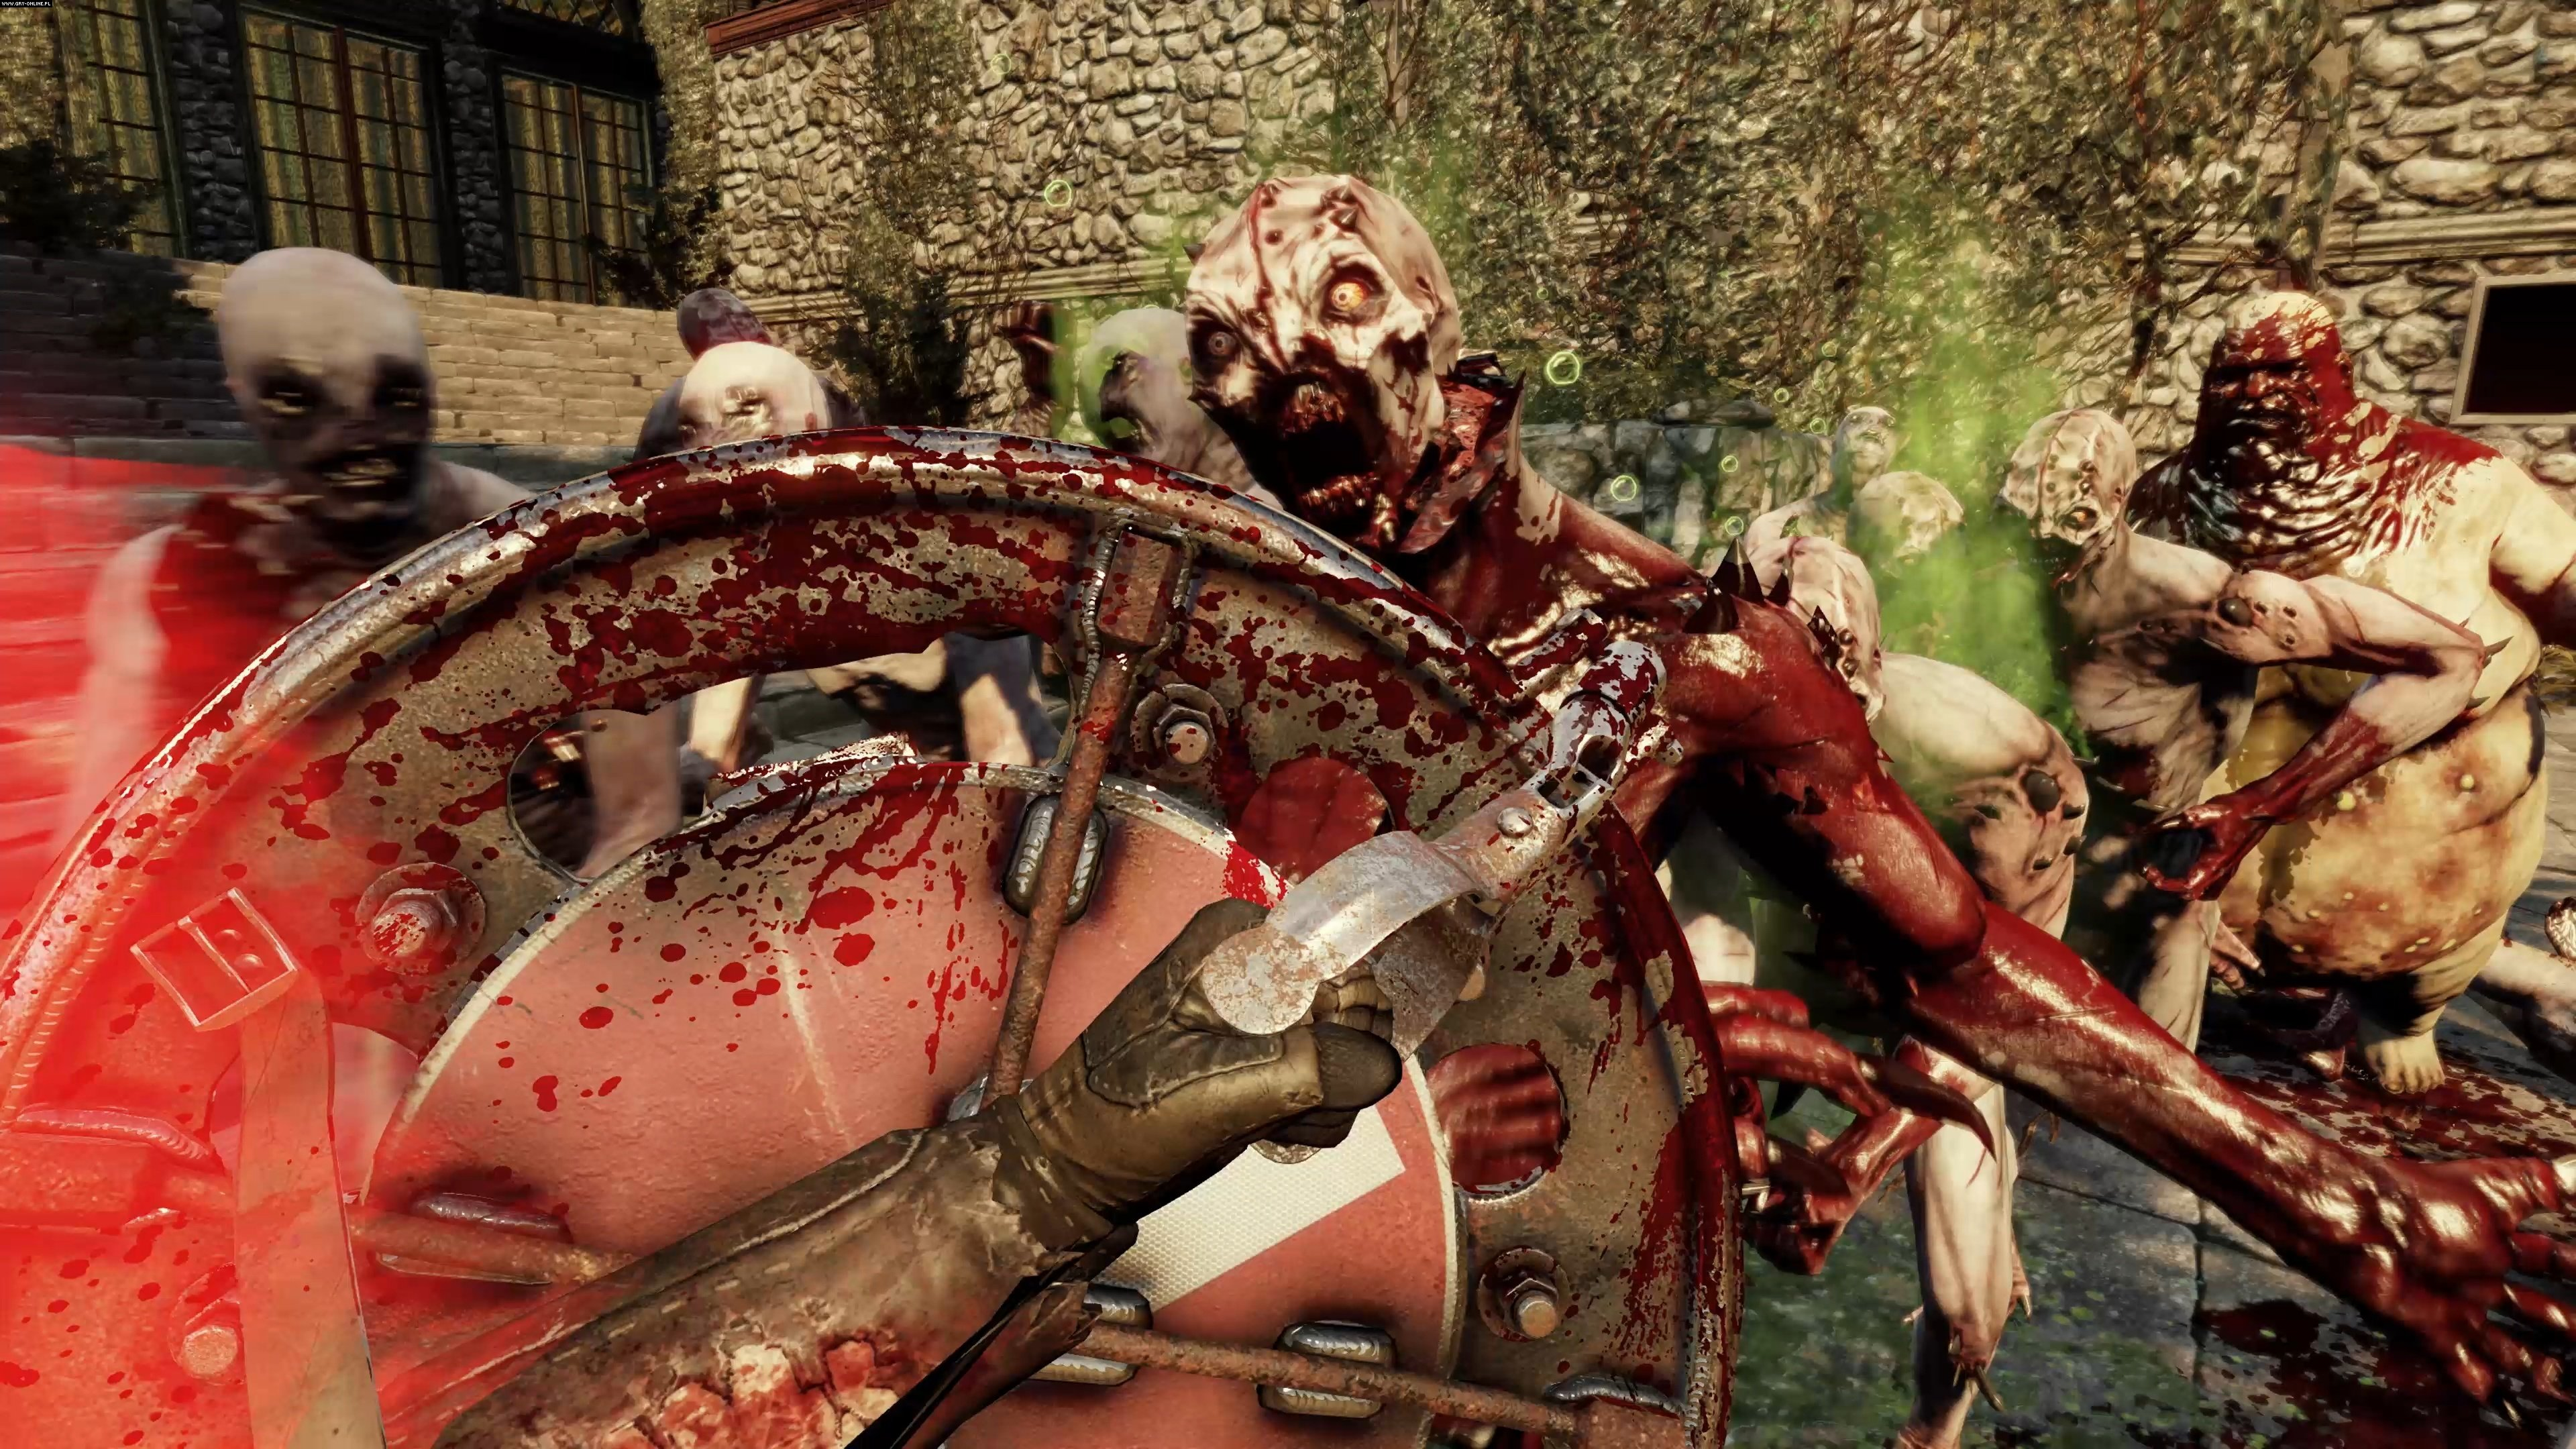 Killing Floor 2 PC, PS4, XONE Gry Screen 22/174, Tripwire Interactive